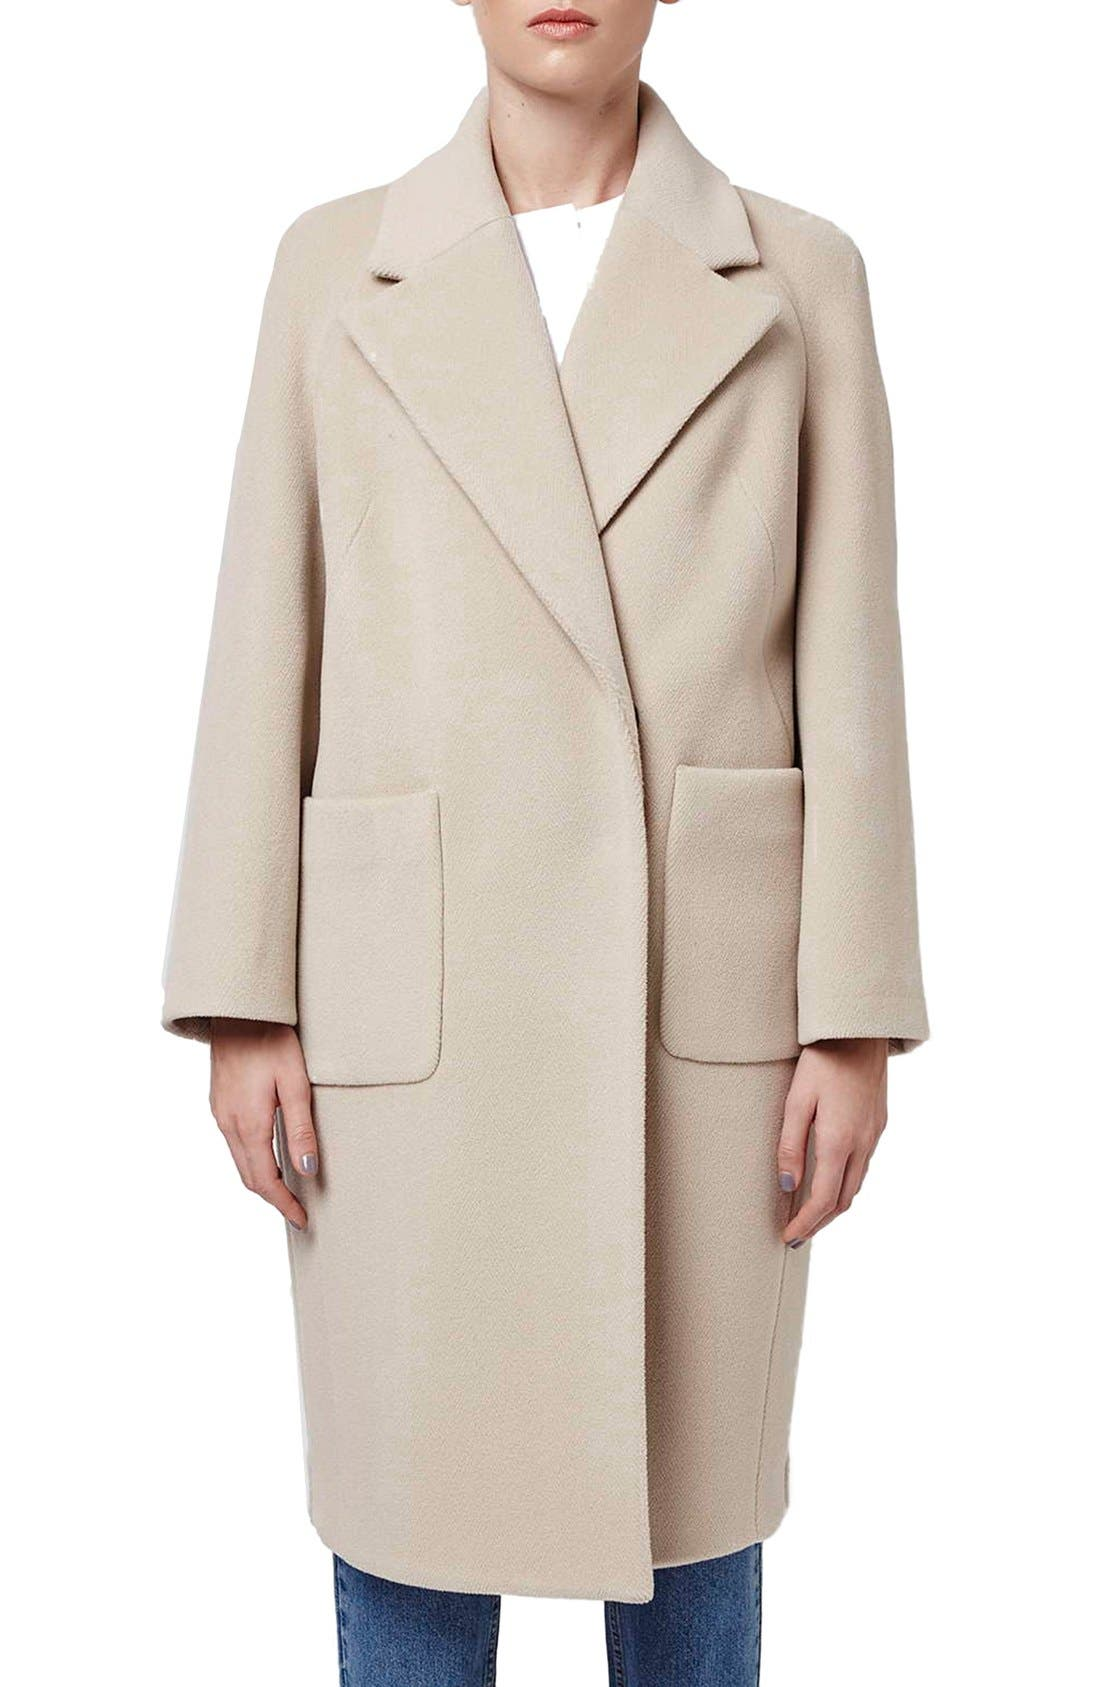 Alternate Image 1 Selected - Topshop Boutique Longline Wool Coat